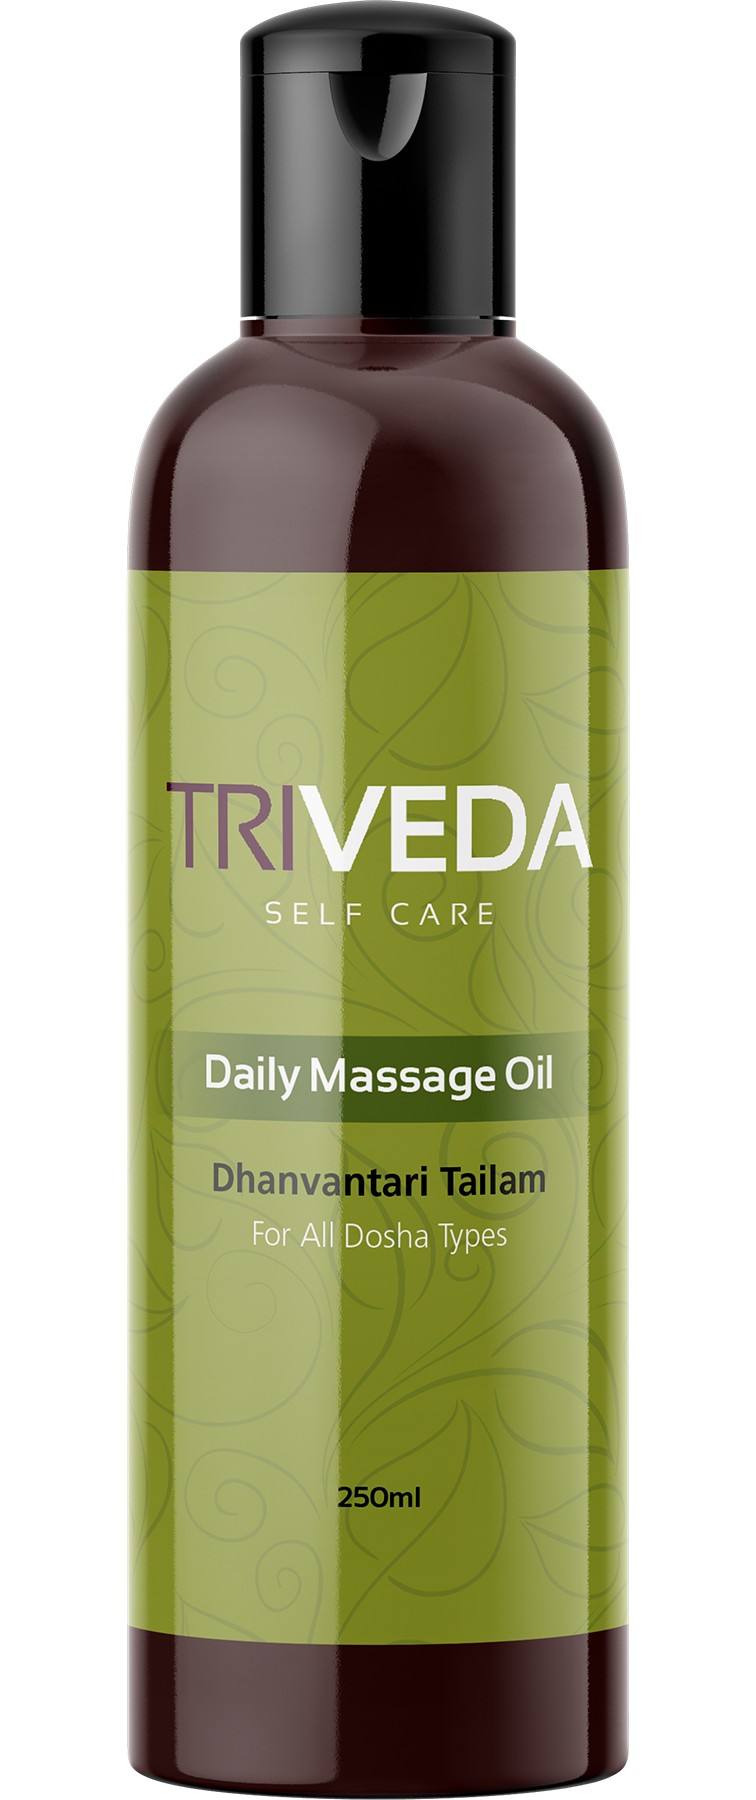 Daily Massage Oil